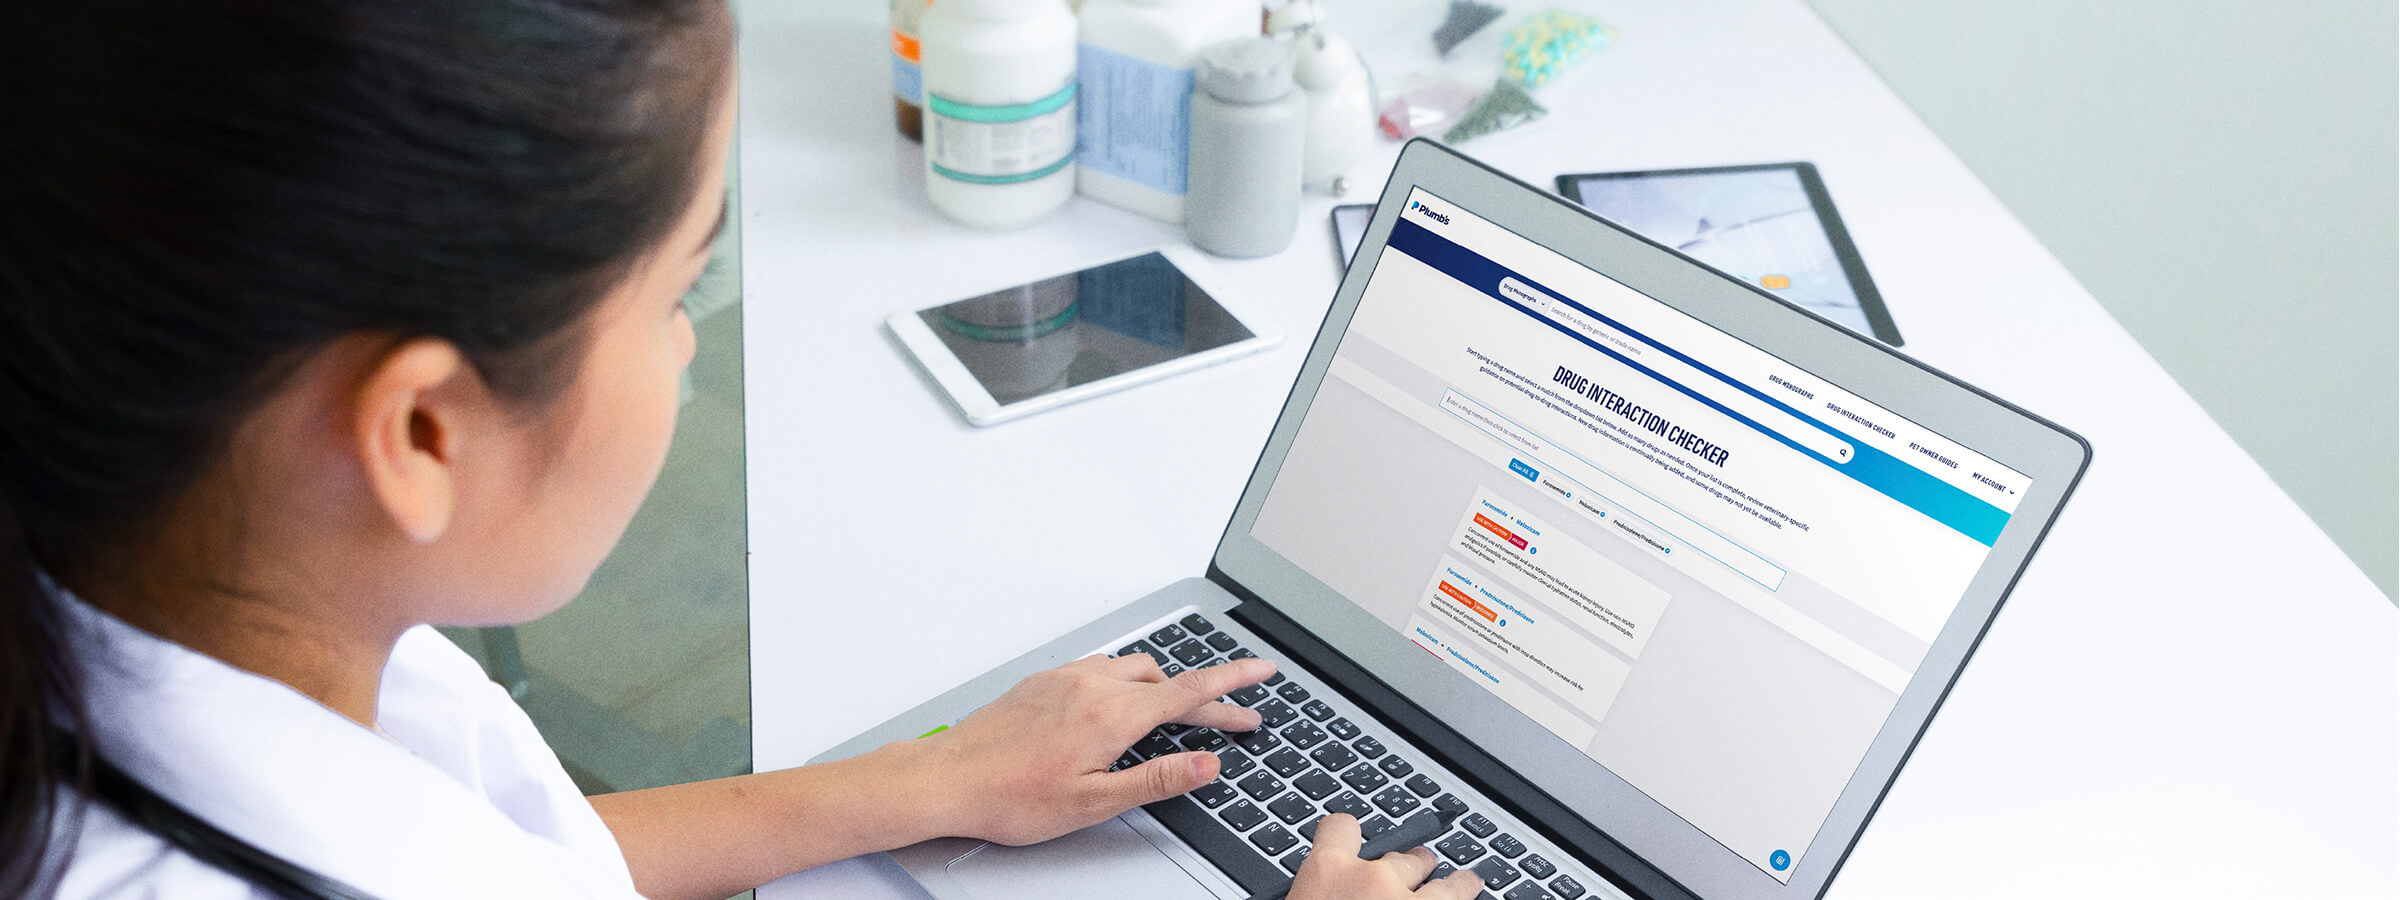 Introducing the Plumb's Drug Interaction Checker